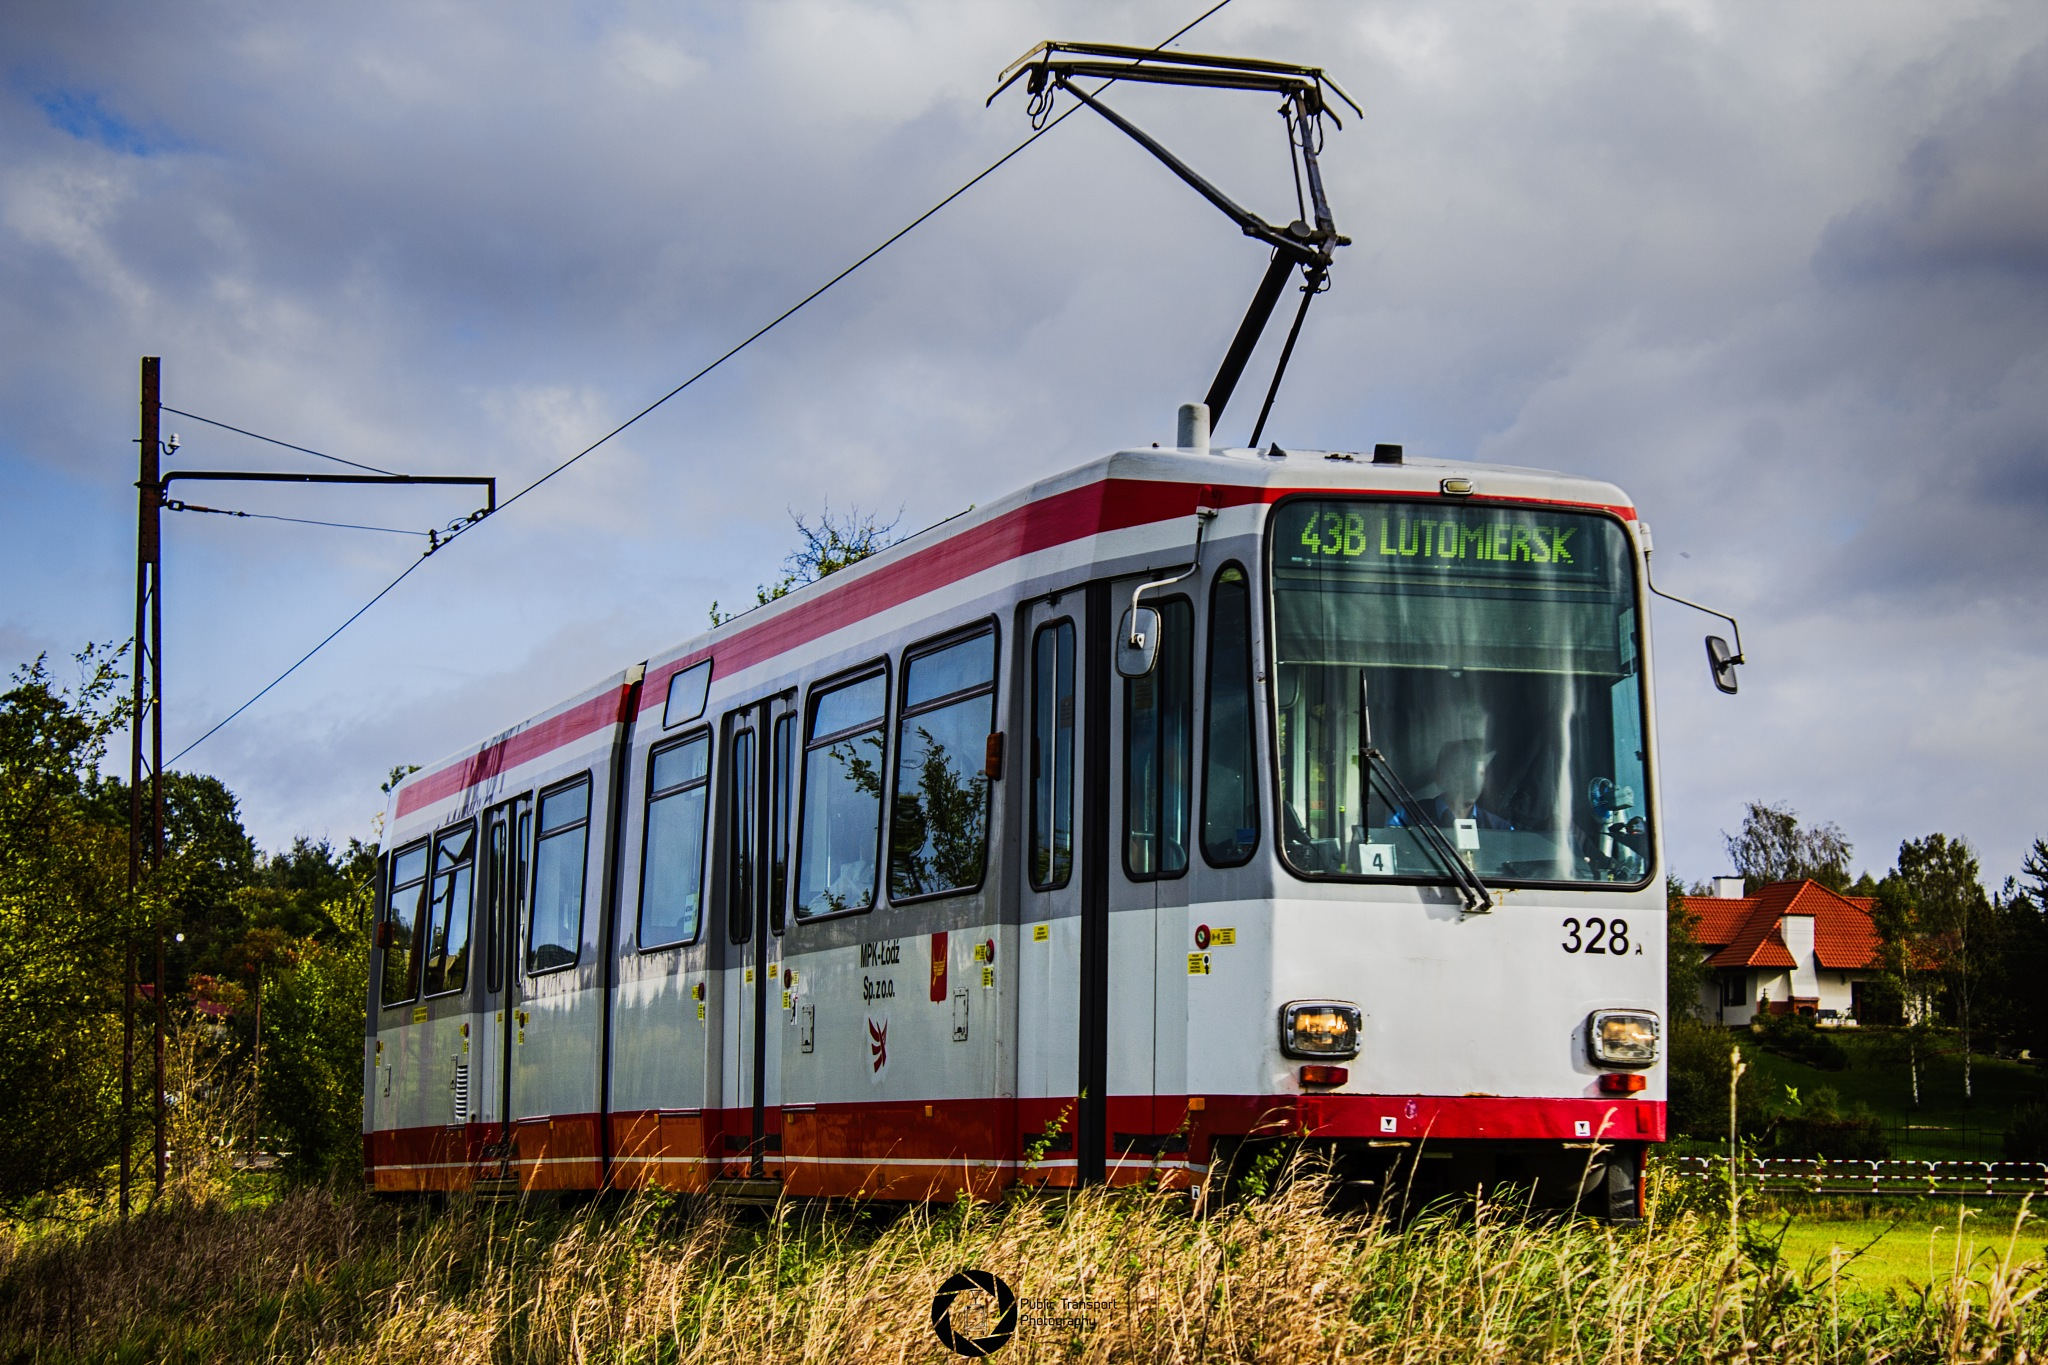 43B     LUTOMIERSK by Public Transport Photography